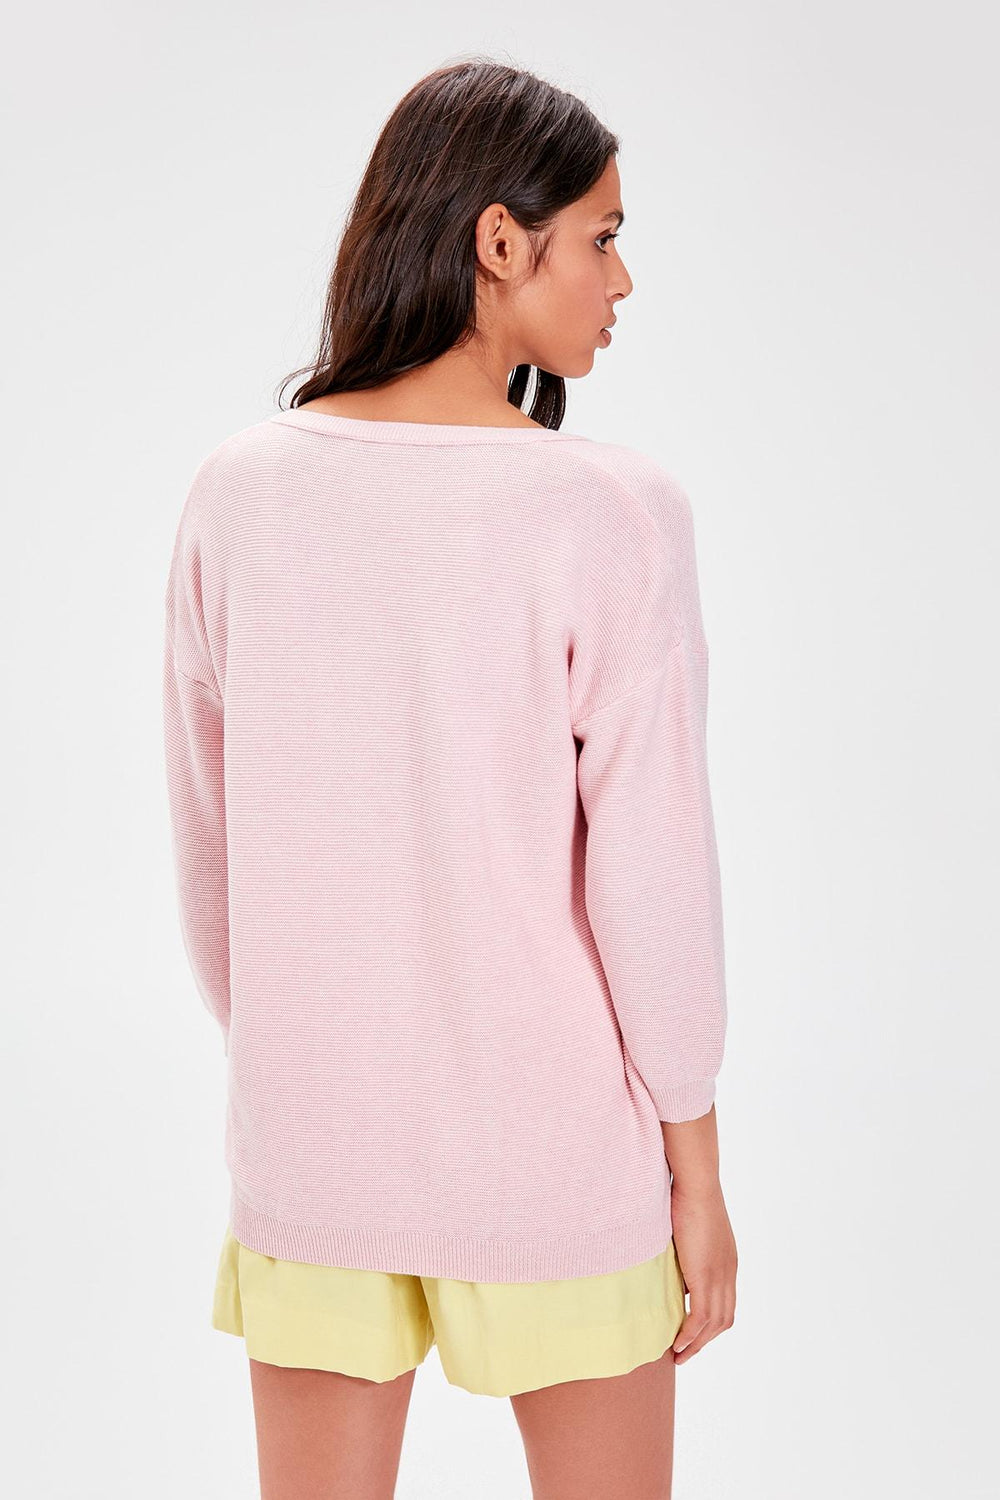 Pink V-Neck Knitwear Sweater - Top Maxy